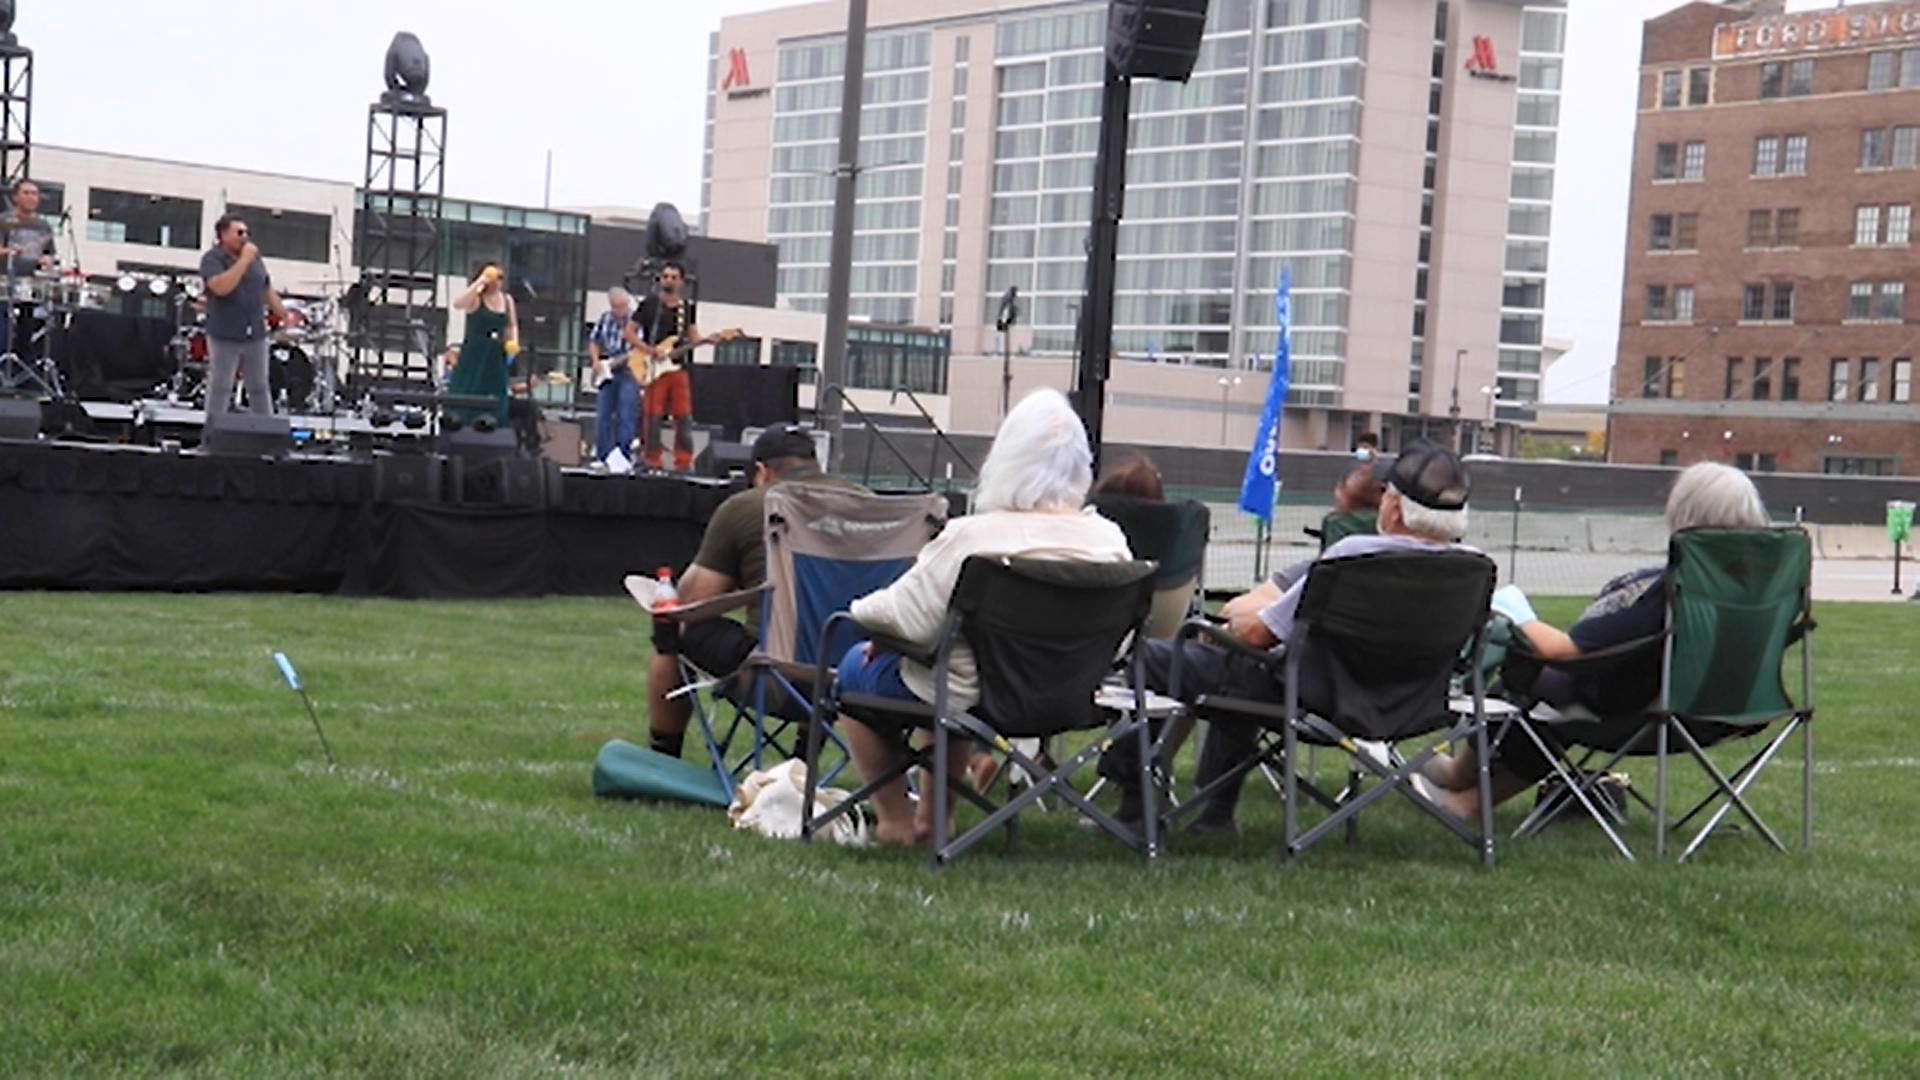 Six people in lawn chairs watch a band play on an outdoor stange